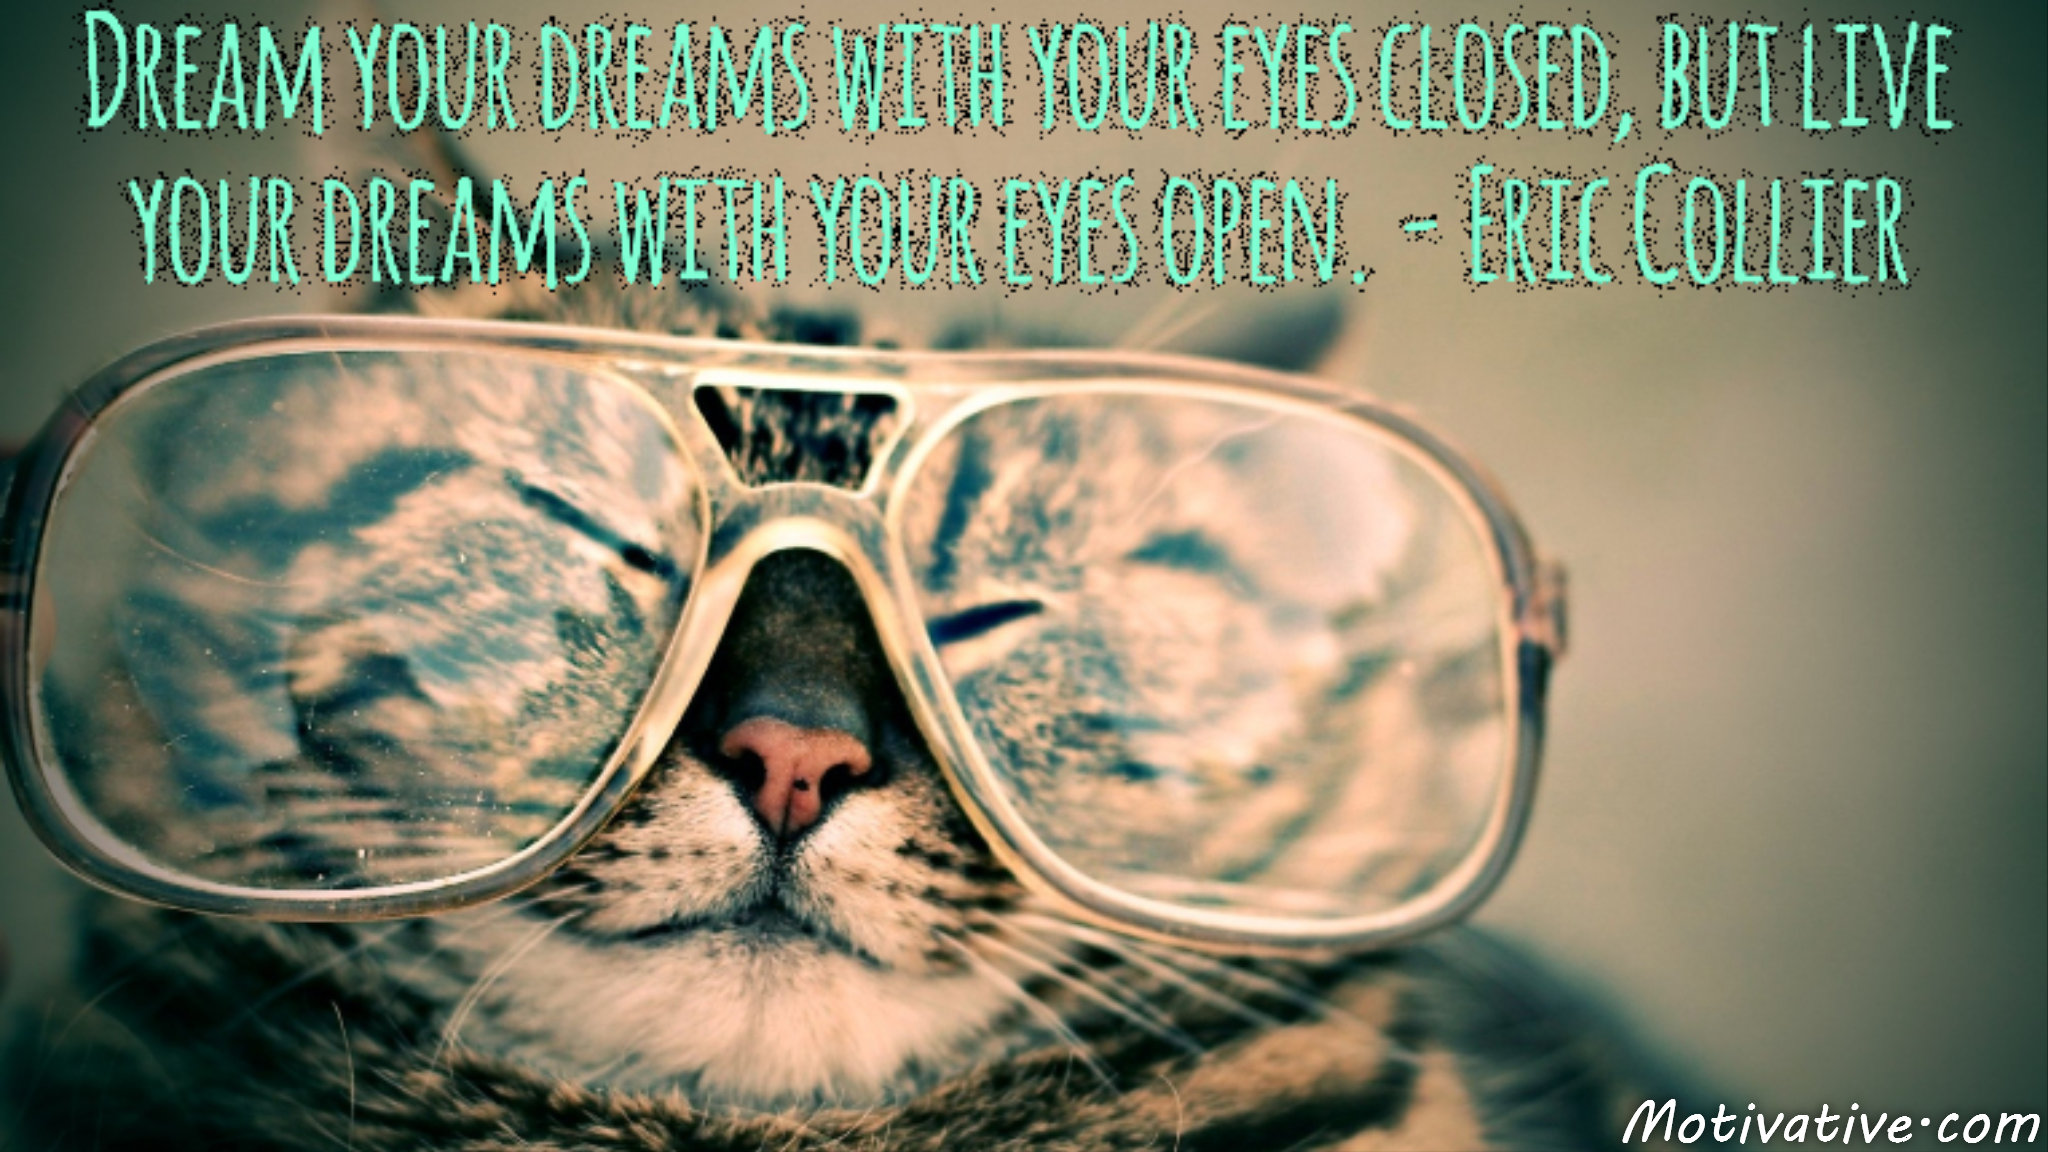 Dream your dreams with your eyes closed, but live your dreams with your eyes open. – Eric Collier